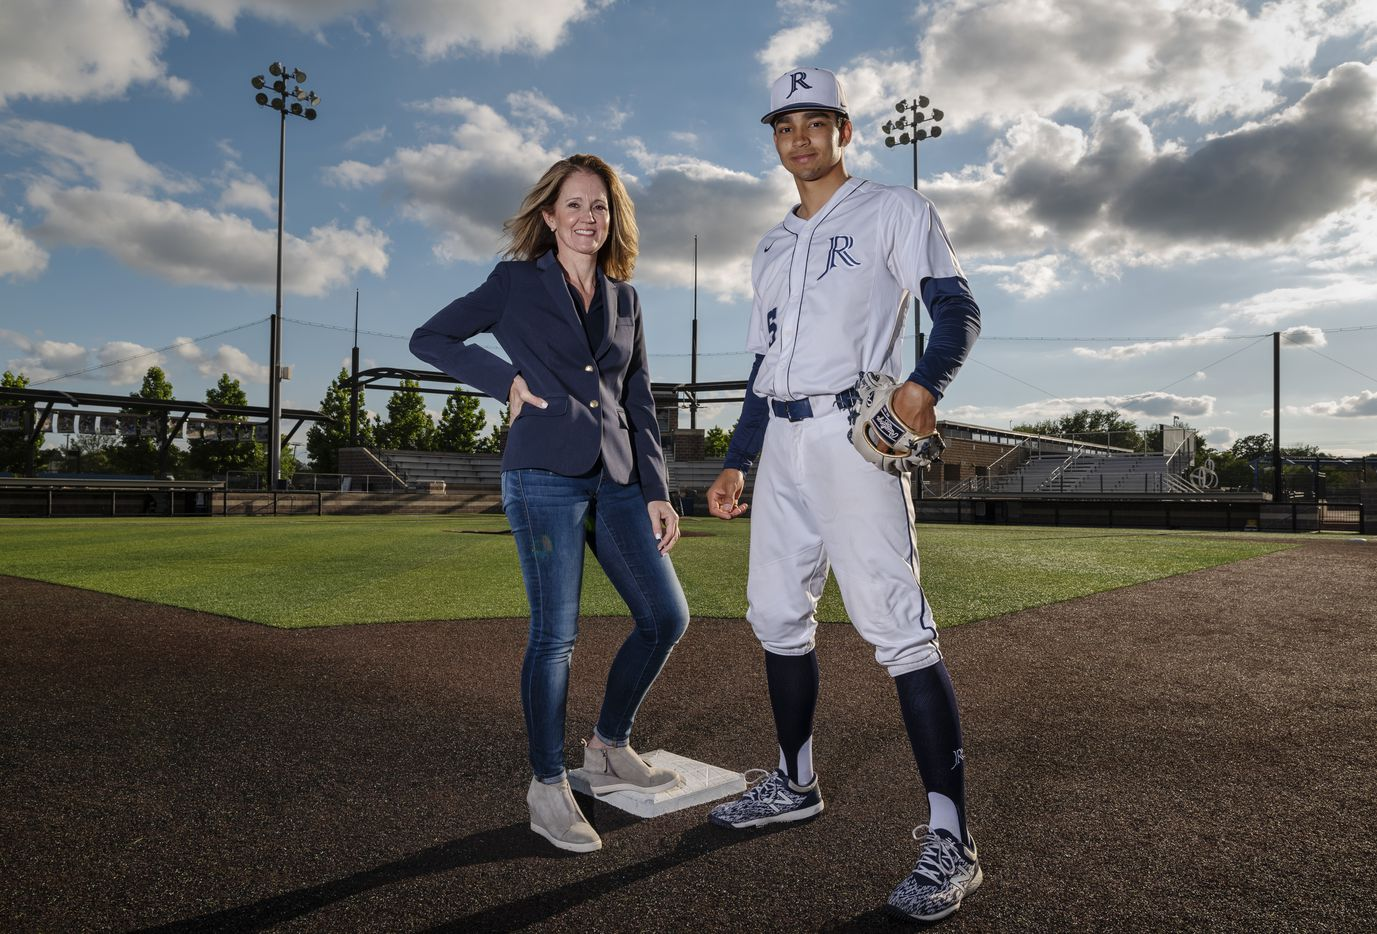 Jesuit senior shortstop Jordan Lawlar, 18, and his mother Hope Lawlar, on the baseball diamond on the campus of Jesuit College Preparatory School of Dallas, on Tuesday, May 04, 2021.